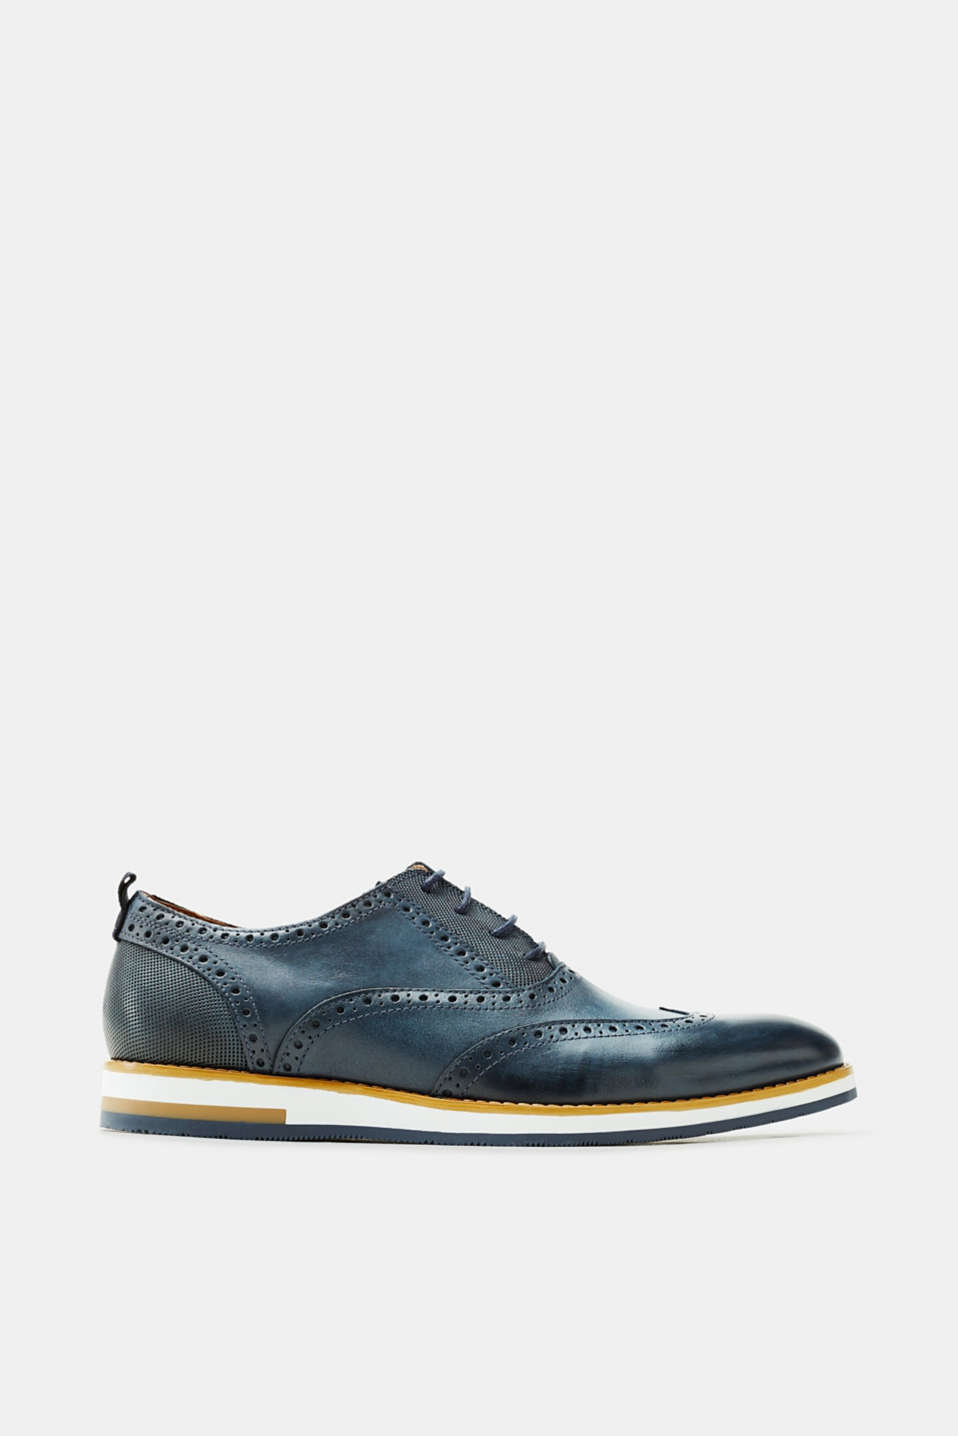 Esprit - Leather Derby shoes with a brogue pattern